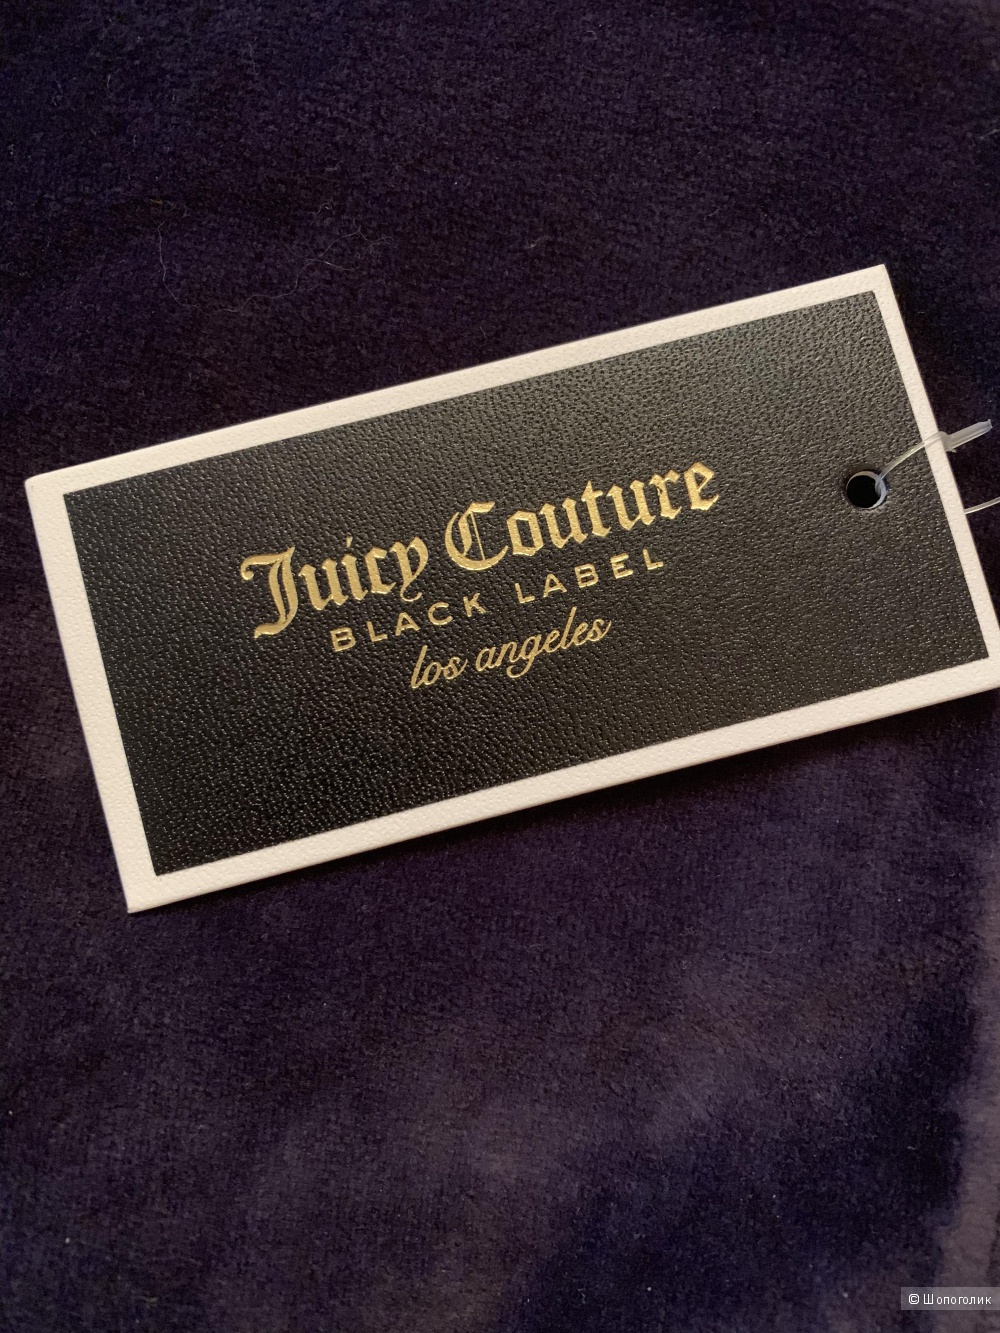 JUICY COUTURE велюровые брюки-джоггеры, размер М